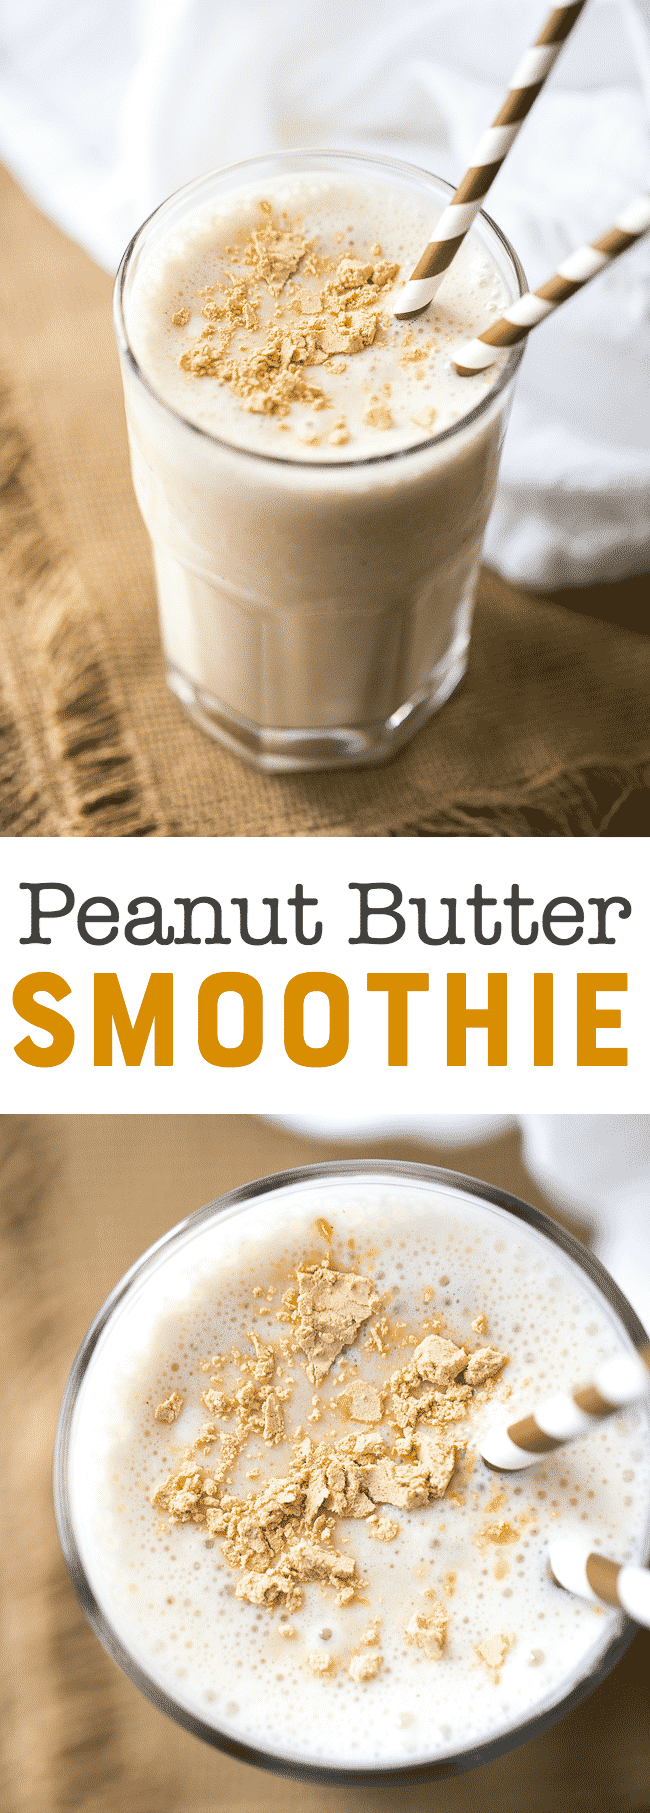 Peanut Butter Smoothie Recipe | PB2 Smoothie | Peanut Butter Banana Smoothie Recipe | Easy Smoothie | Vanilla Yogurt Smoothie